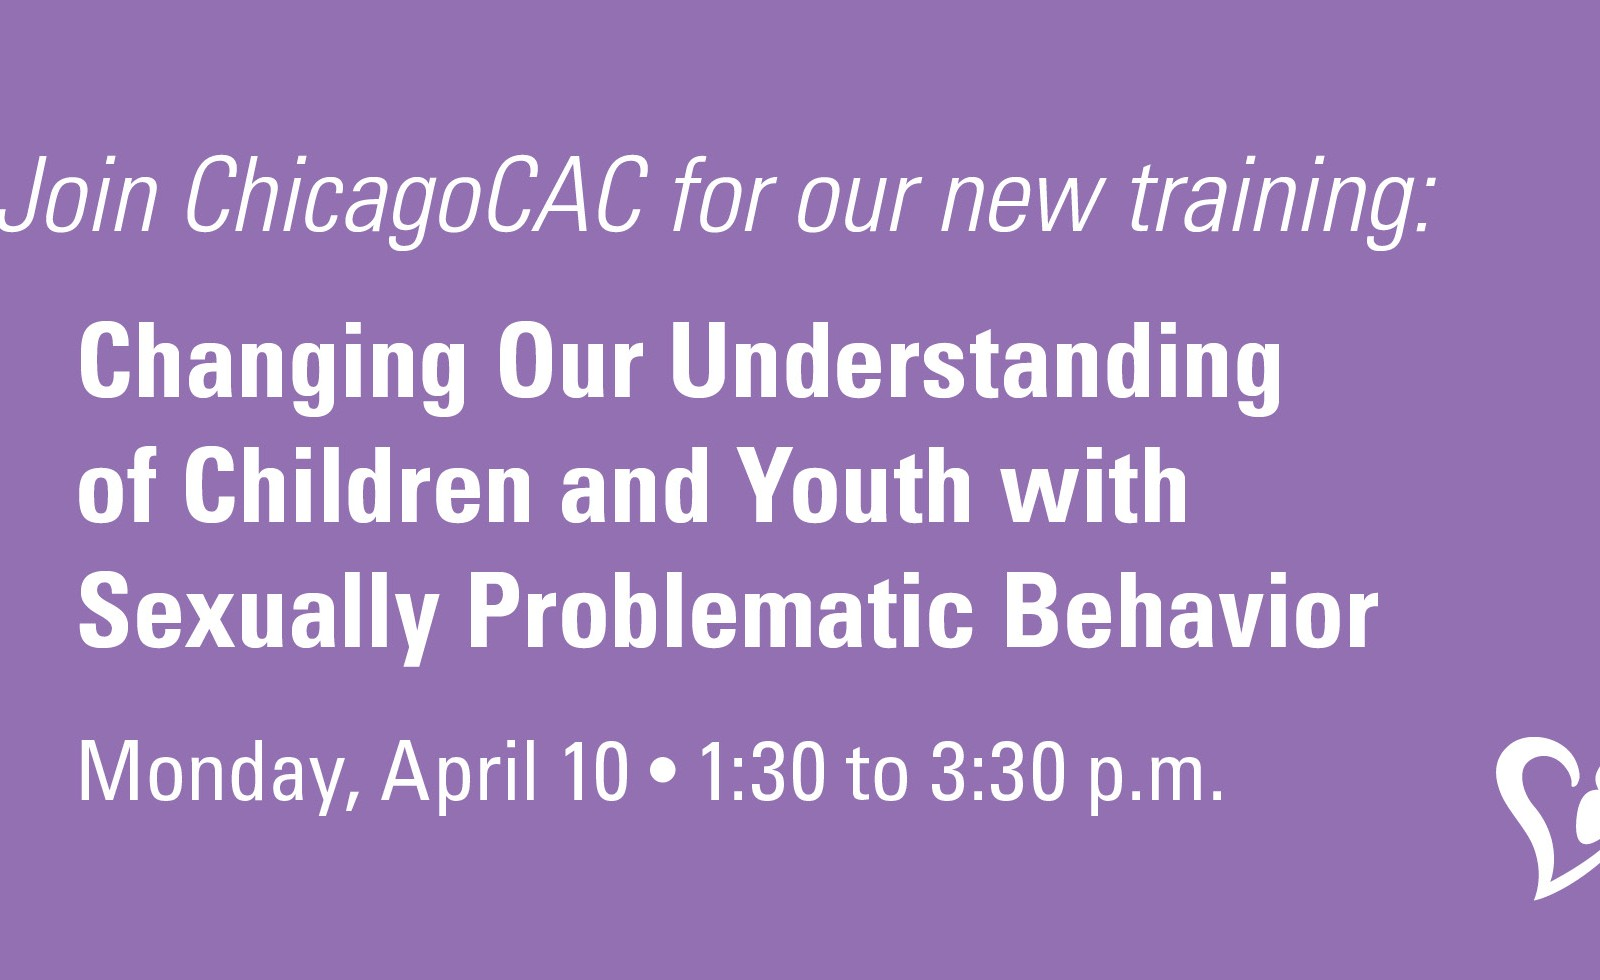 ChicagoCAC COUoYSPB Training - April 10